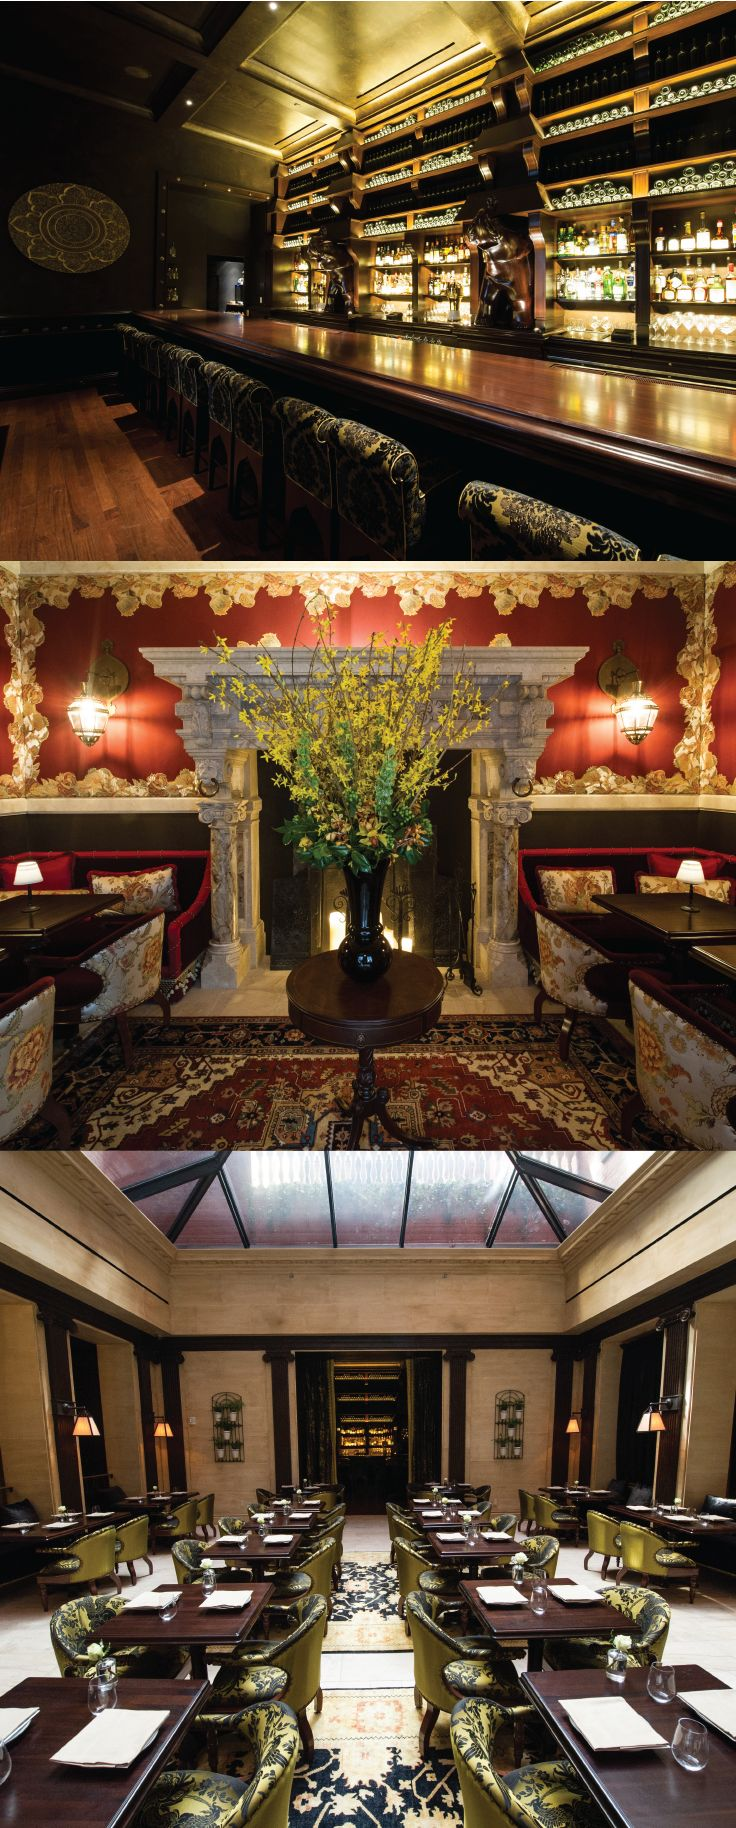 Beautiful bar and dining area at the Nomad Restaurant in NYC. Get a look into this restaurant and an exclusive recipe made in Staub cookware. #Nomadhotel #NYCeats #placestovisit